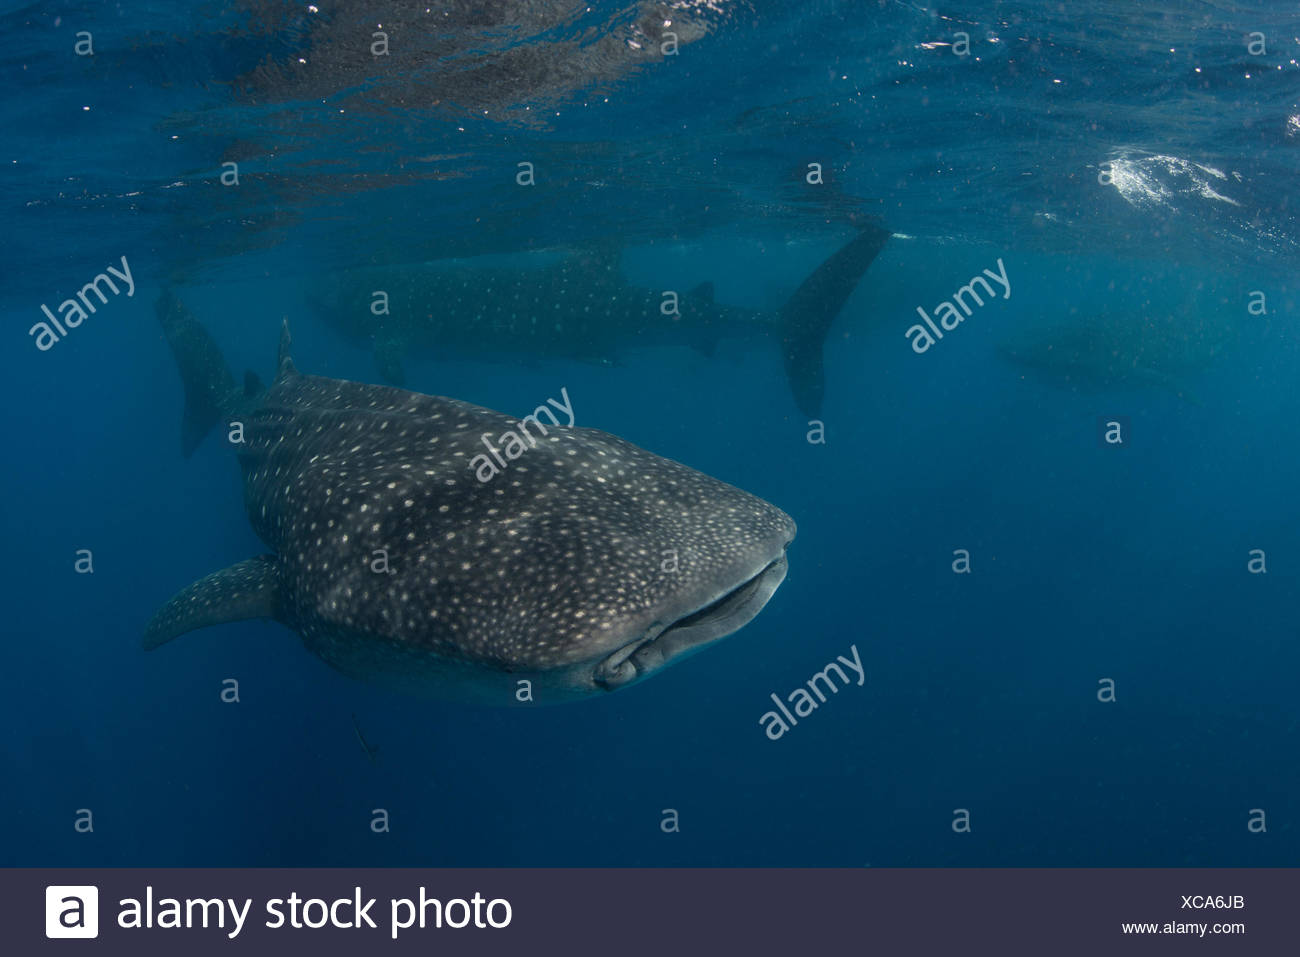 Large whale sharks (Rhincodon typus) feeding on fish eggs at sea surface, Isla Mujeres, Mexico - Stock Image